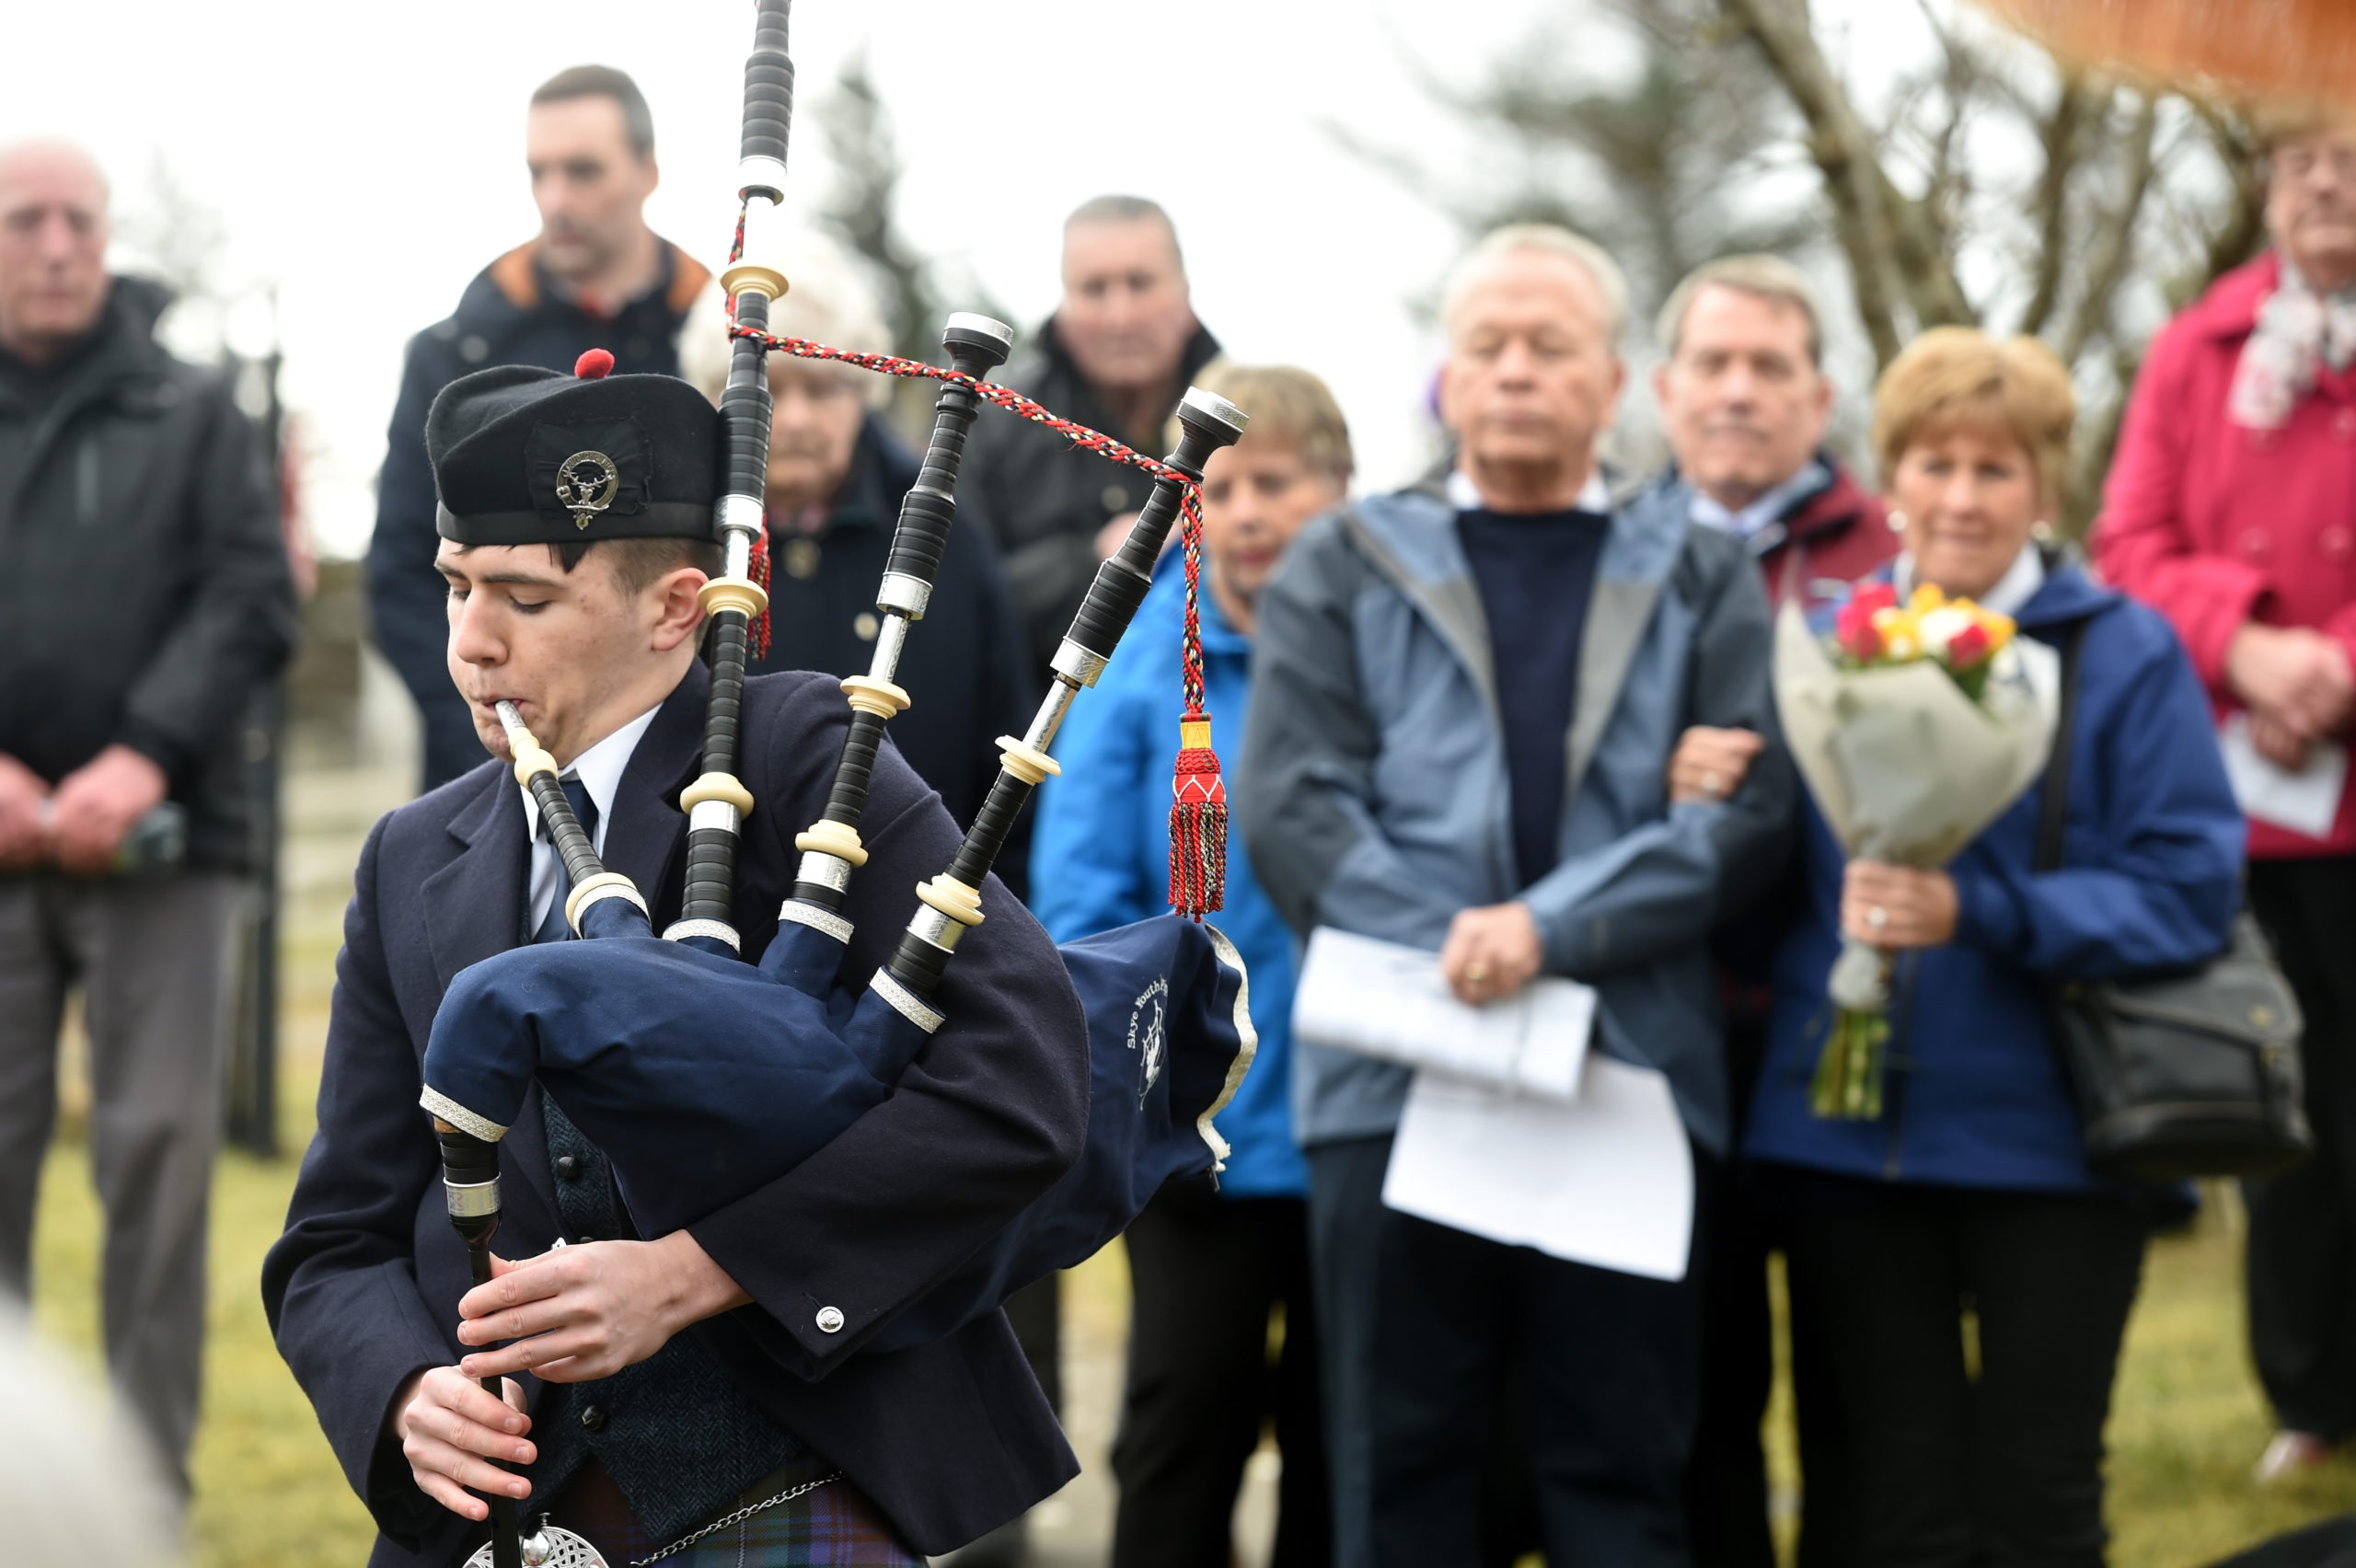 A memorial service took place yesterday at the Staffin War Memorial on Skye in memory of the nine American airmen who died when their aircraft crashed in mist on Beinn Edra 75 years ago to the day. Doug Overfield with his wife Barb from the USA during the service. Picture by Sandy McCook